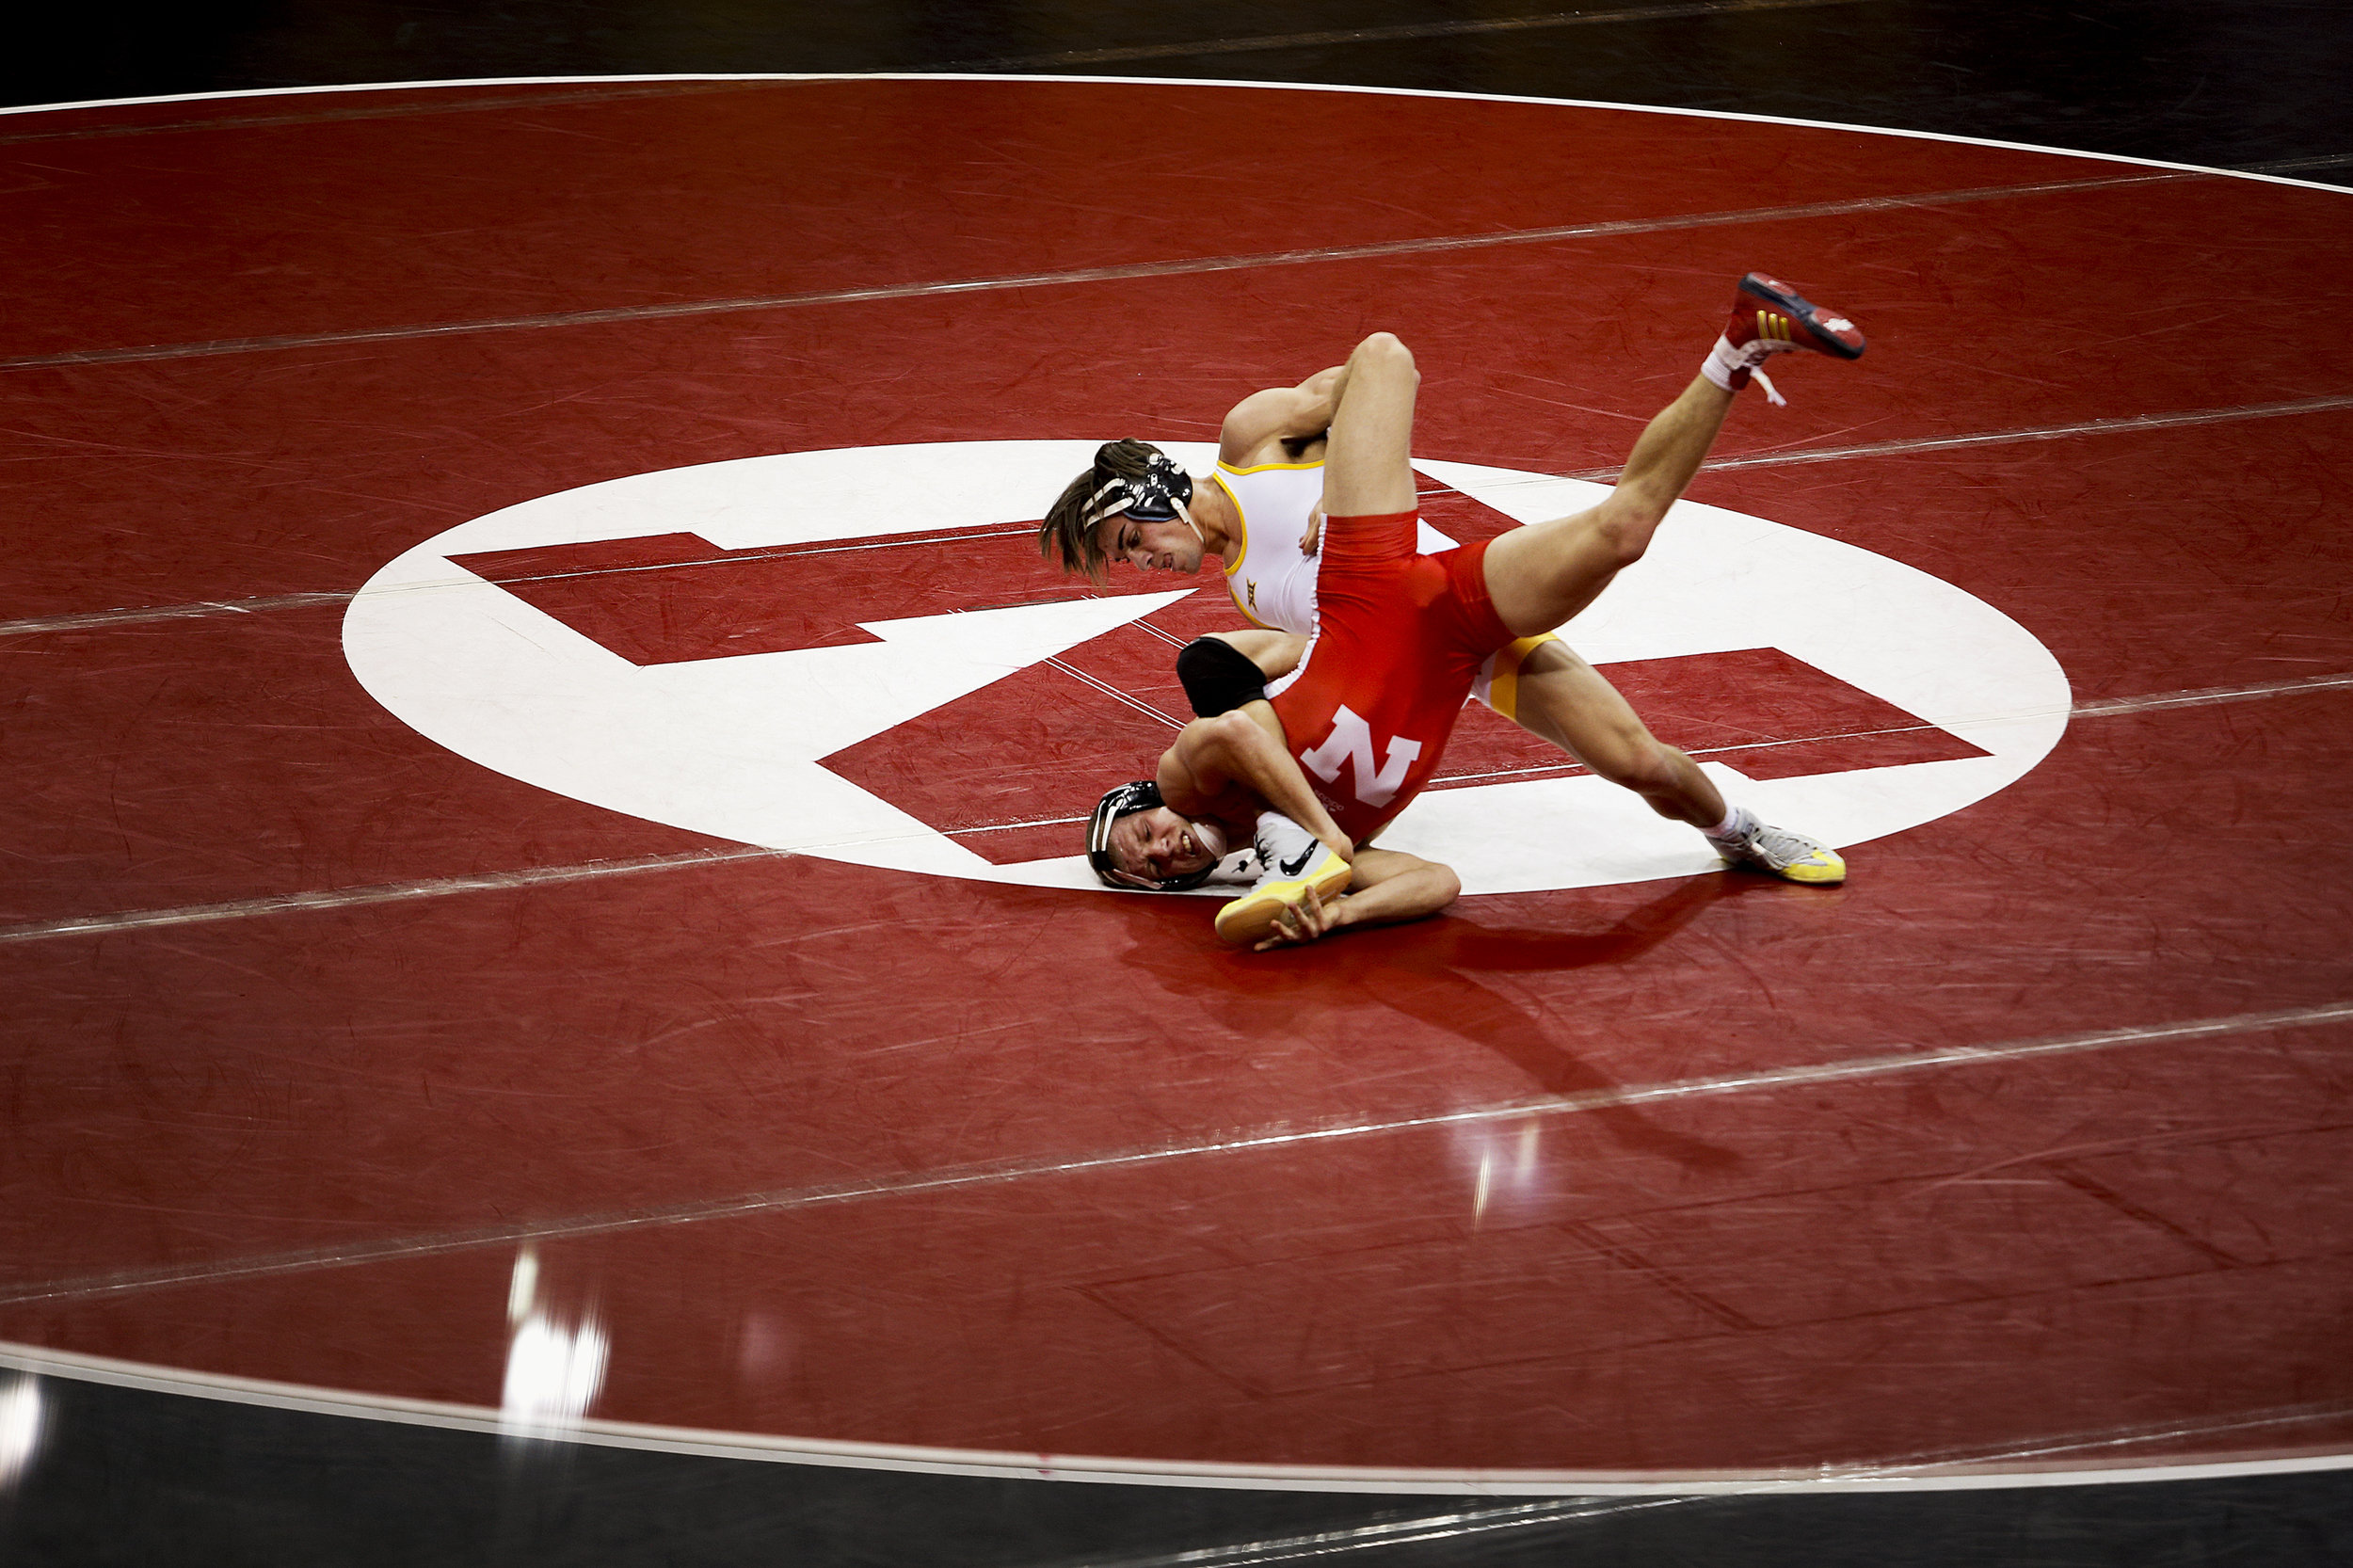 Nebraska's Anthony Abidin (red) is forced to the mat by Wyoming's Bryce Meredith (white) during their match at Devaney Sports Complex Saturday November 21, 2015 in Lincoln, Nebraska. Meredith would defeat Abidin 12-3 but represented the only Wyoming win for the day. Nebraska defeated Wyoming overall by a score of 32-4.